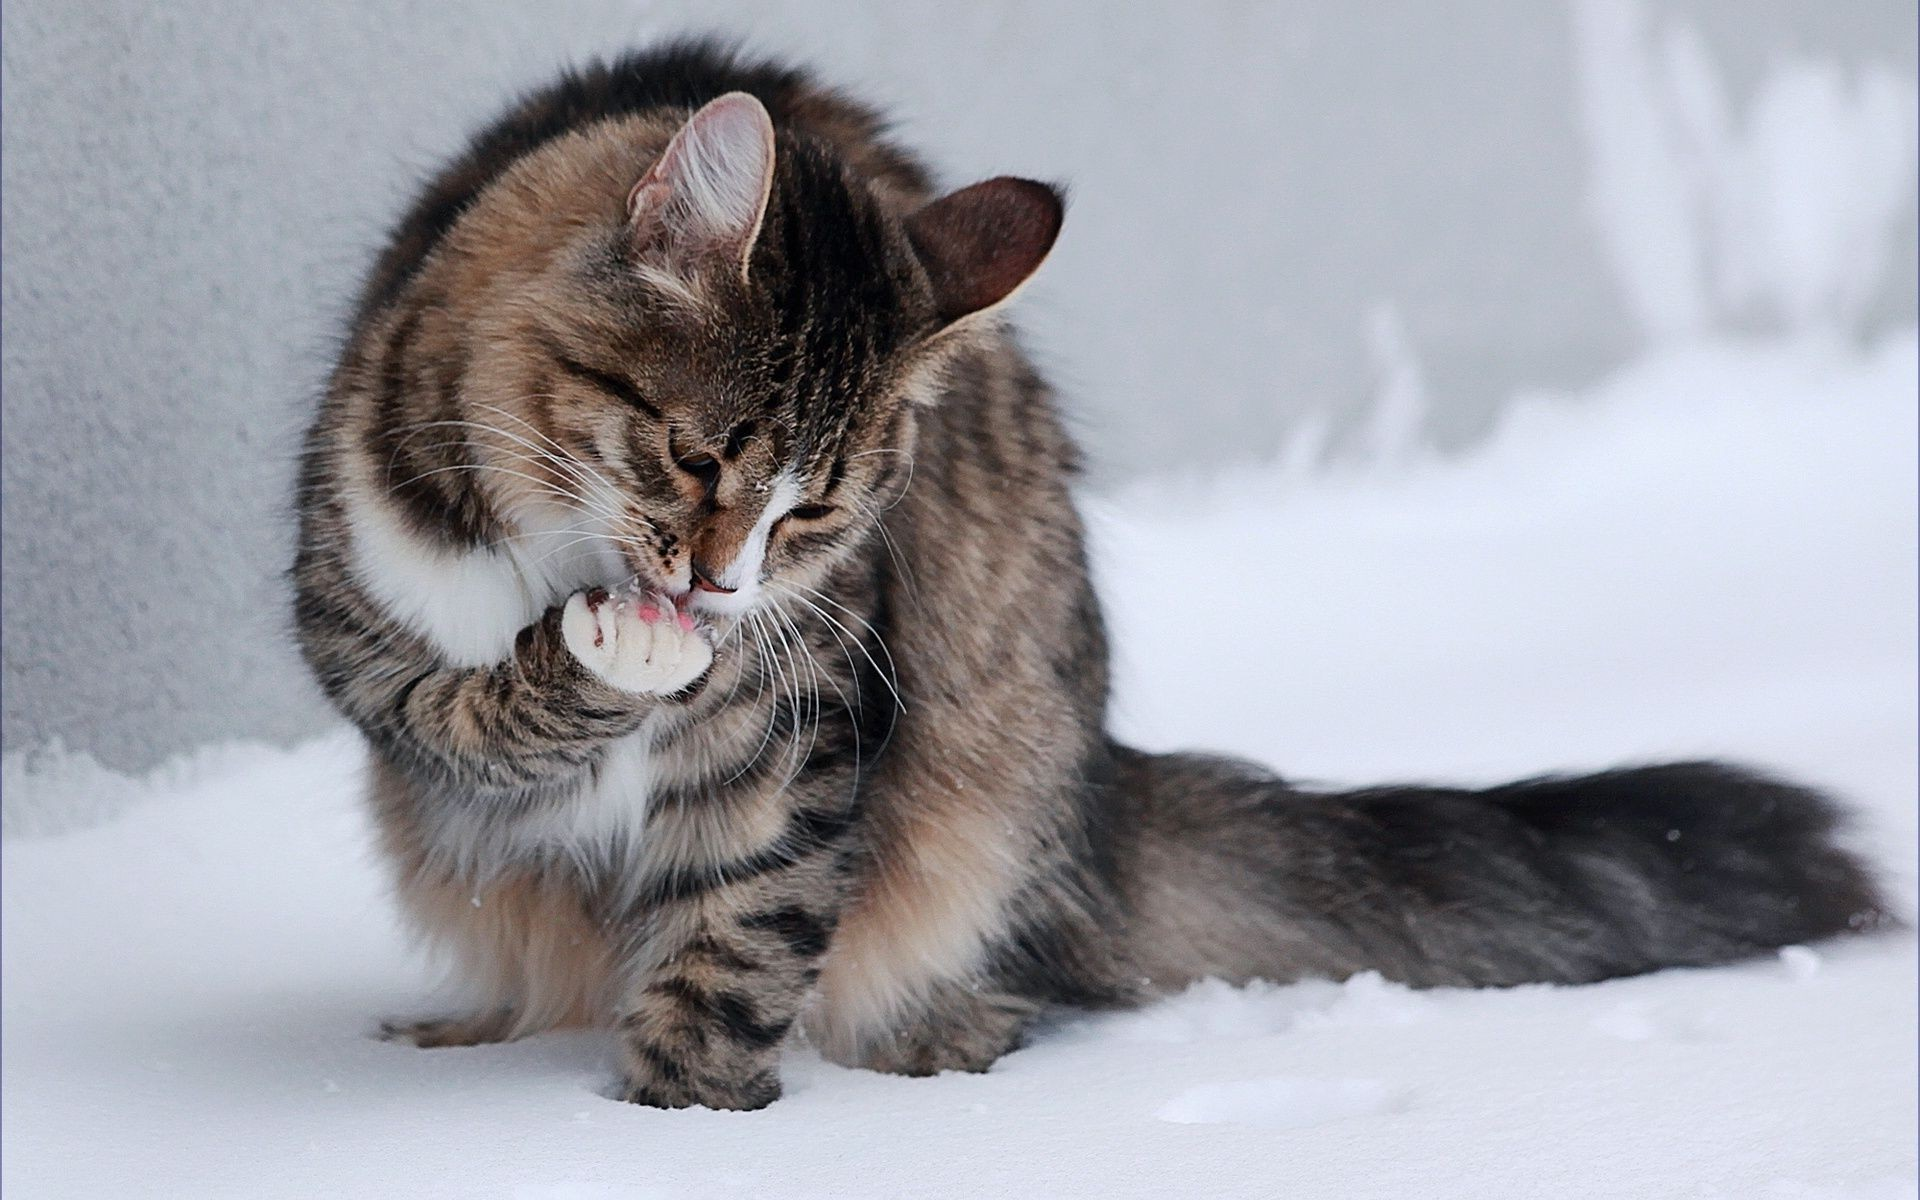 kitty licks paw in the snow